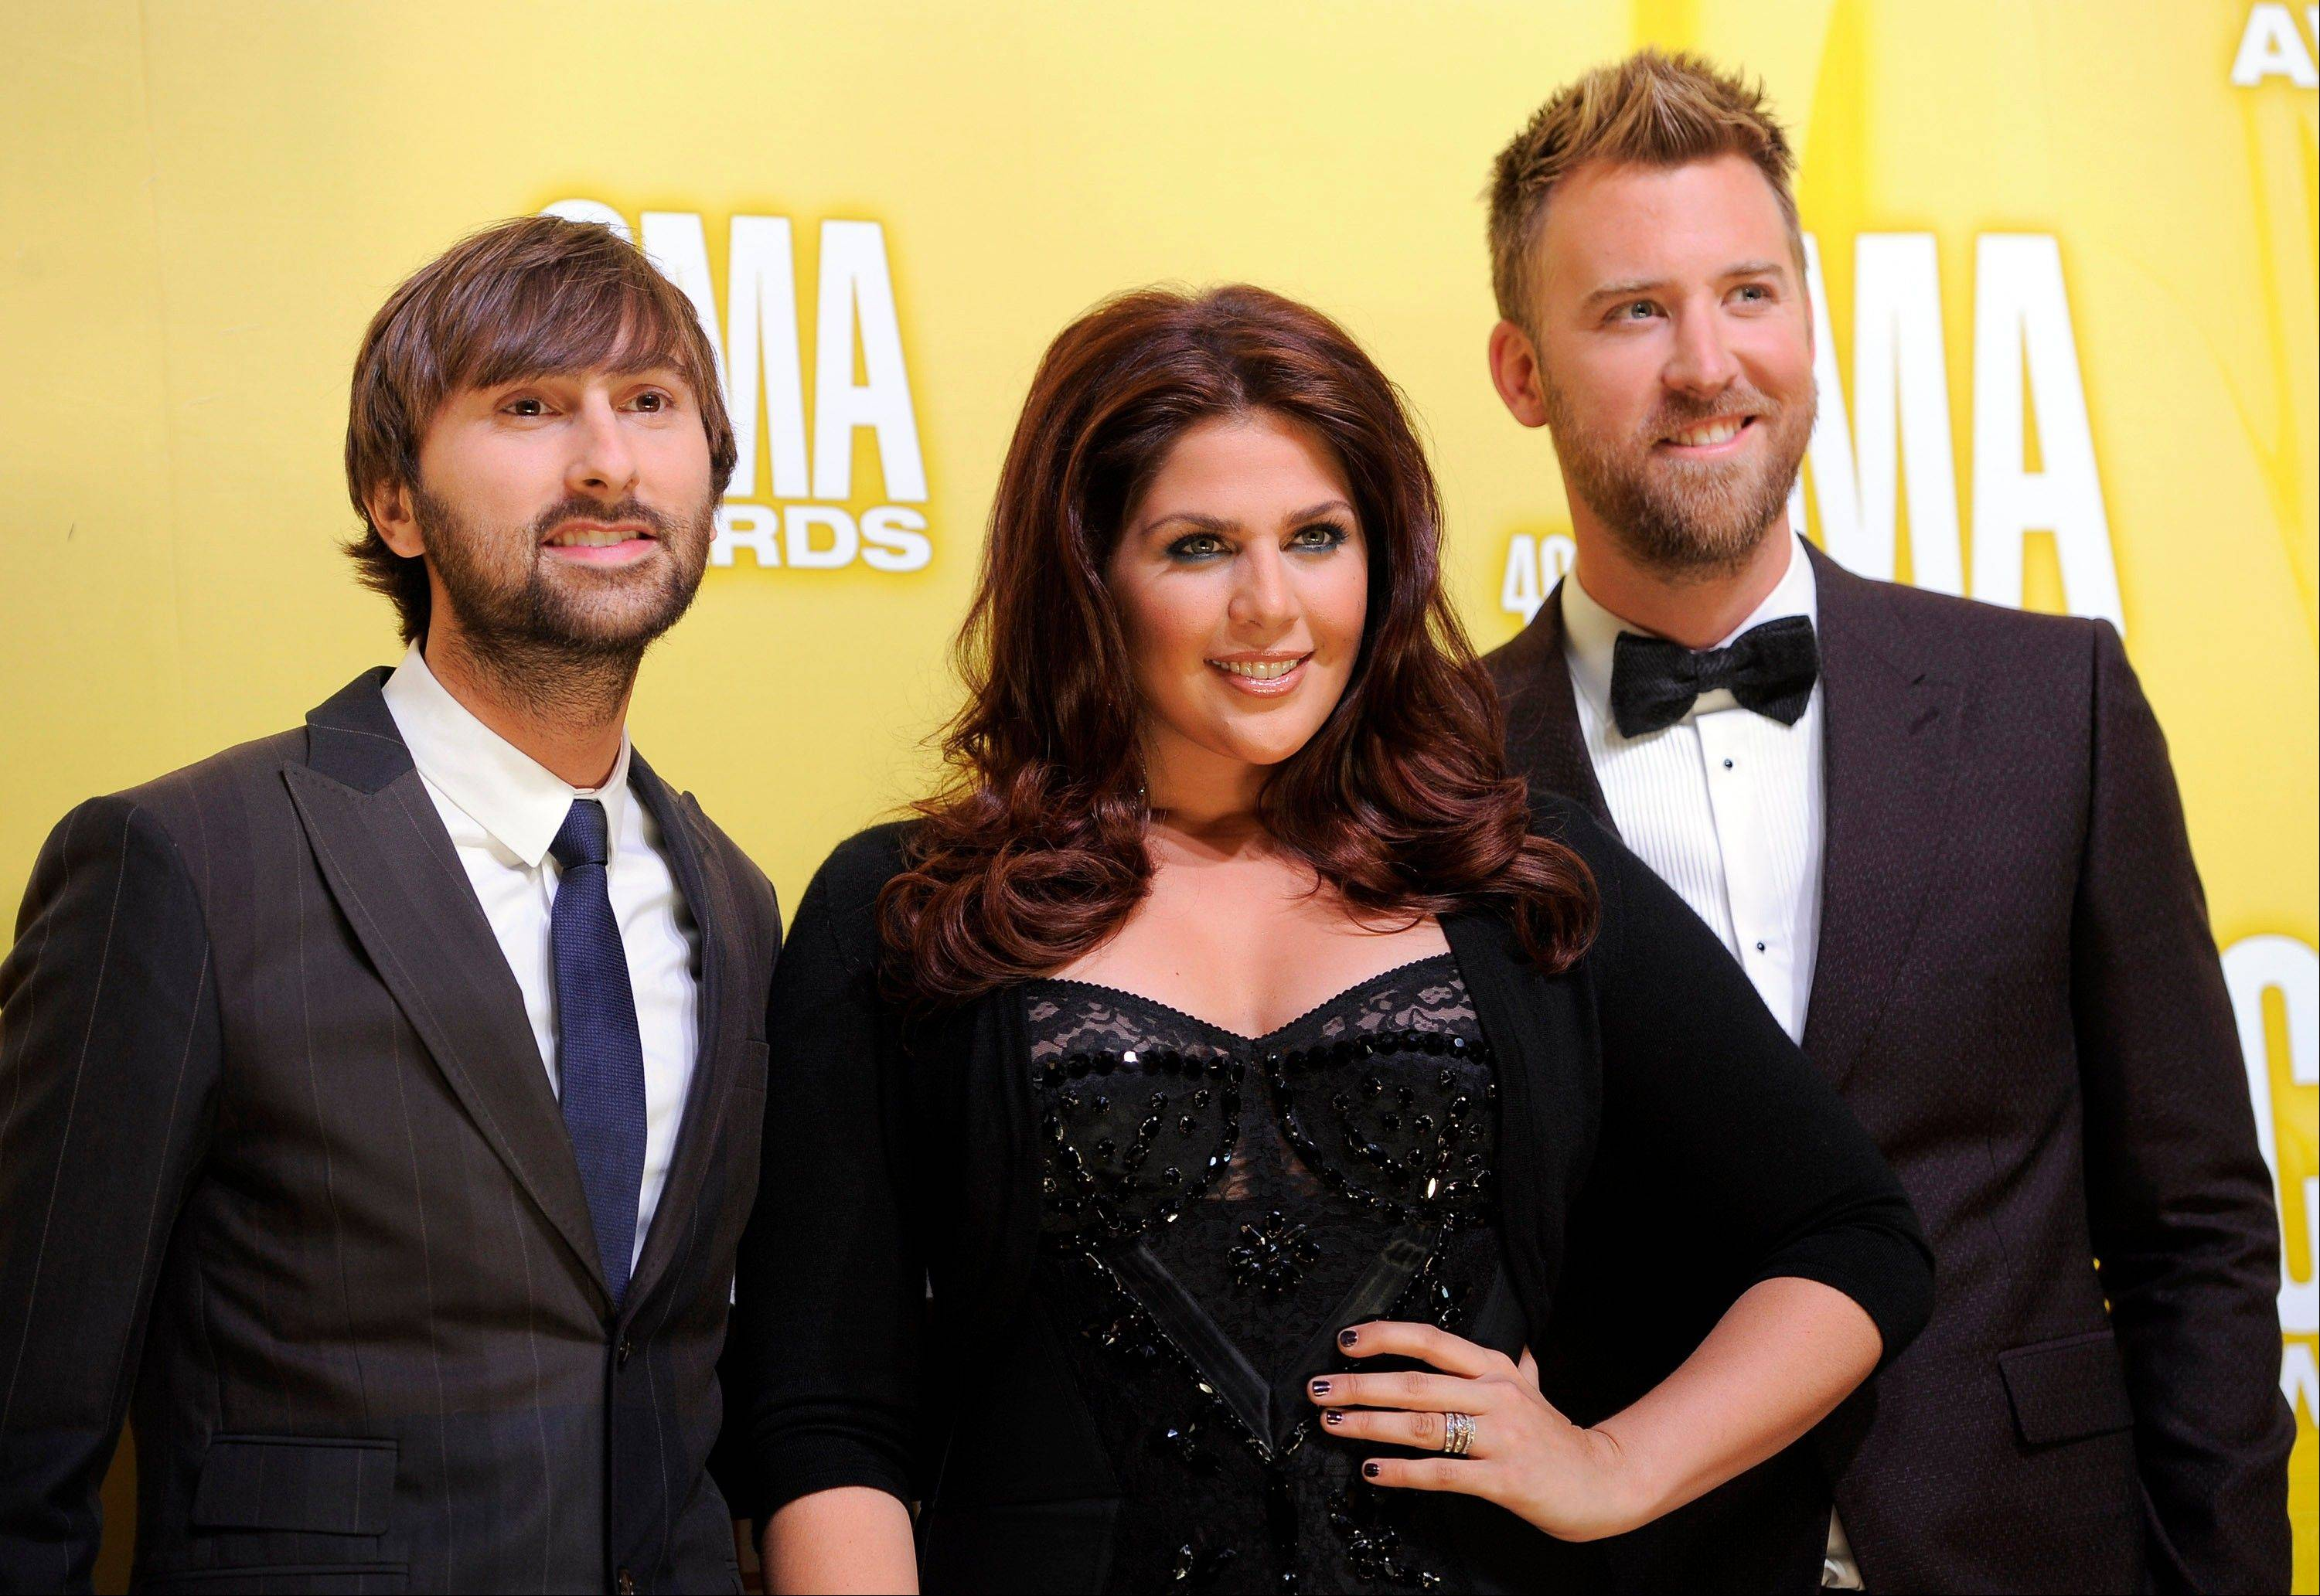 Members of the band Lady Antebellum, from left, Dave Haywood, Hillary Scott and Charles Kelley at the 46th Annual Country Music Awards at the Bridgestone Arena in Nashville, Tenn. The trio won the breakthrough award at the 2012 Billboard Touring Awards on Thursday, Nov. 8, 2012, in New York, for the success it had on its million-selling Own the Night world tour.